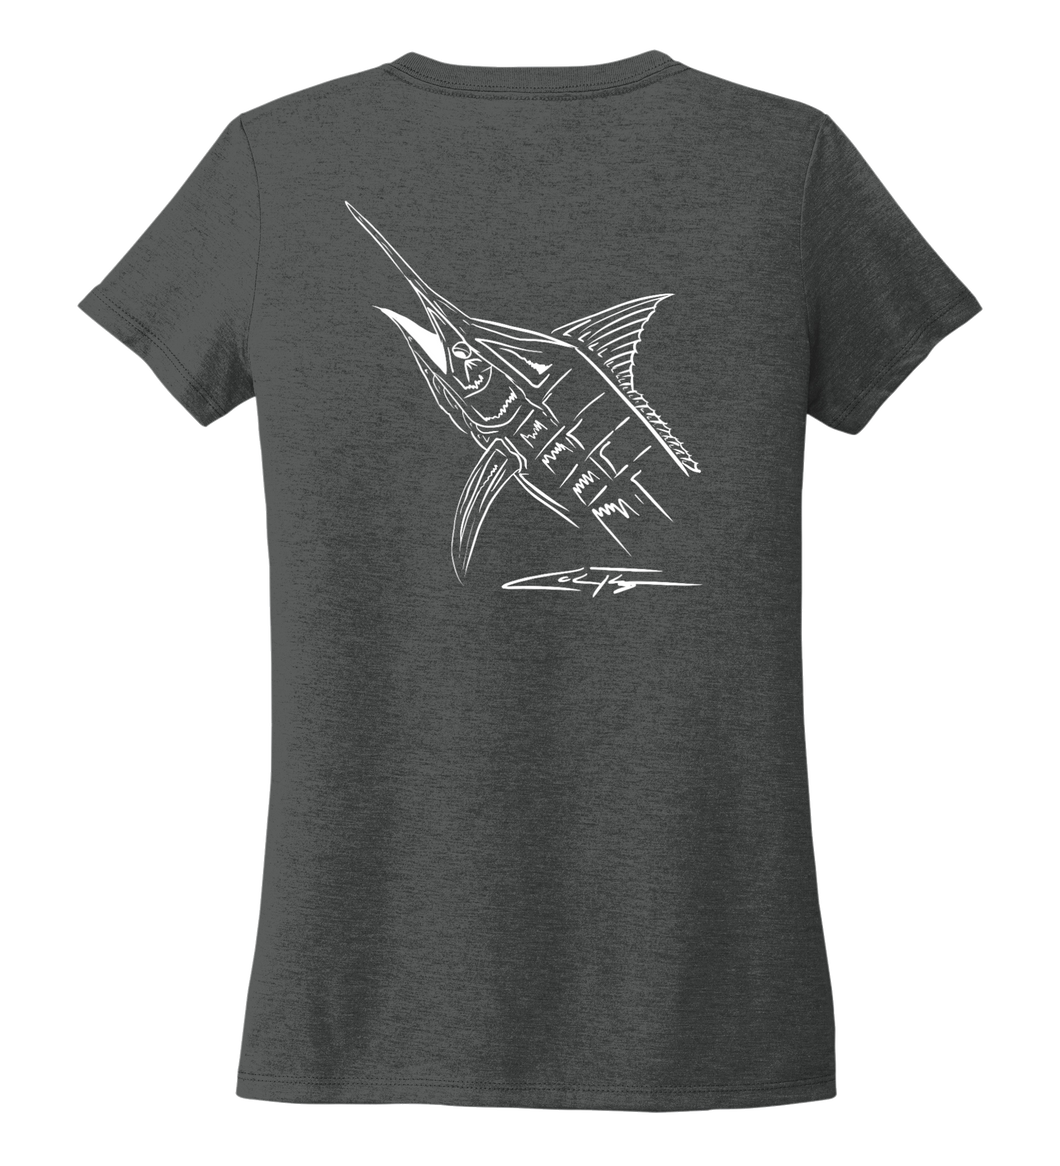 Colin Thompson, Marlin, Women's V-neck T-shirt in Slate Black